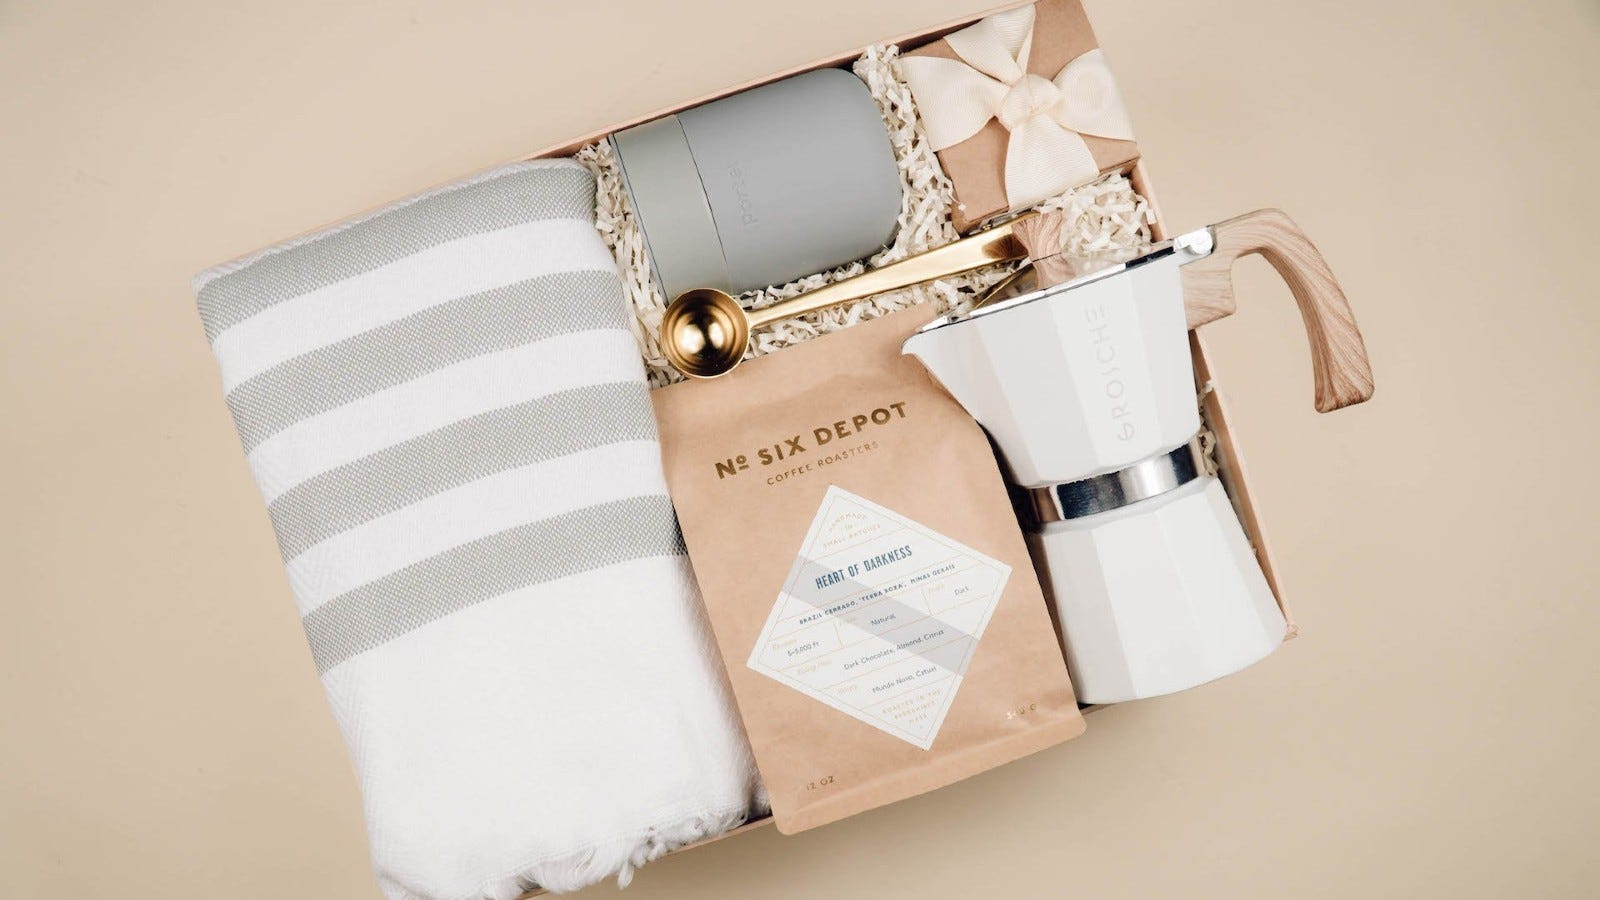 a gift box with a striped blanket, a white espresso maker, a gray mug, a small gift box, a coffee scoop, and a bag of coffee